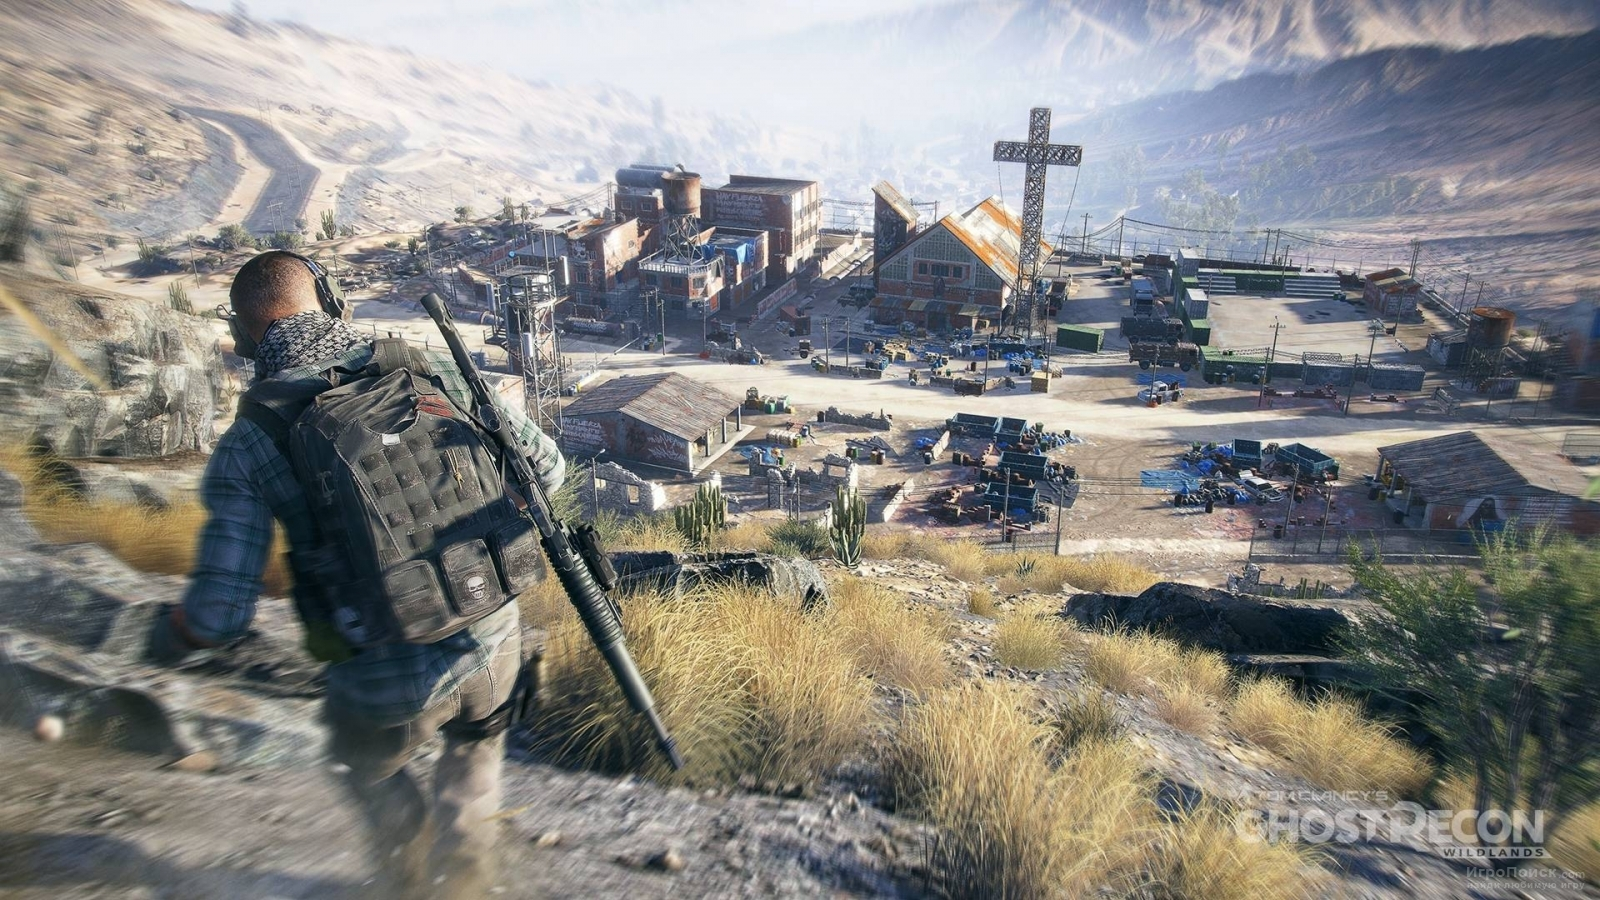 Скриншот к игре Tom Clancy's Ghost Recon: Wildlands